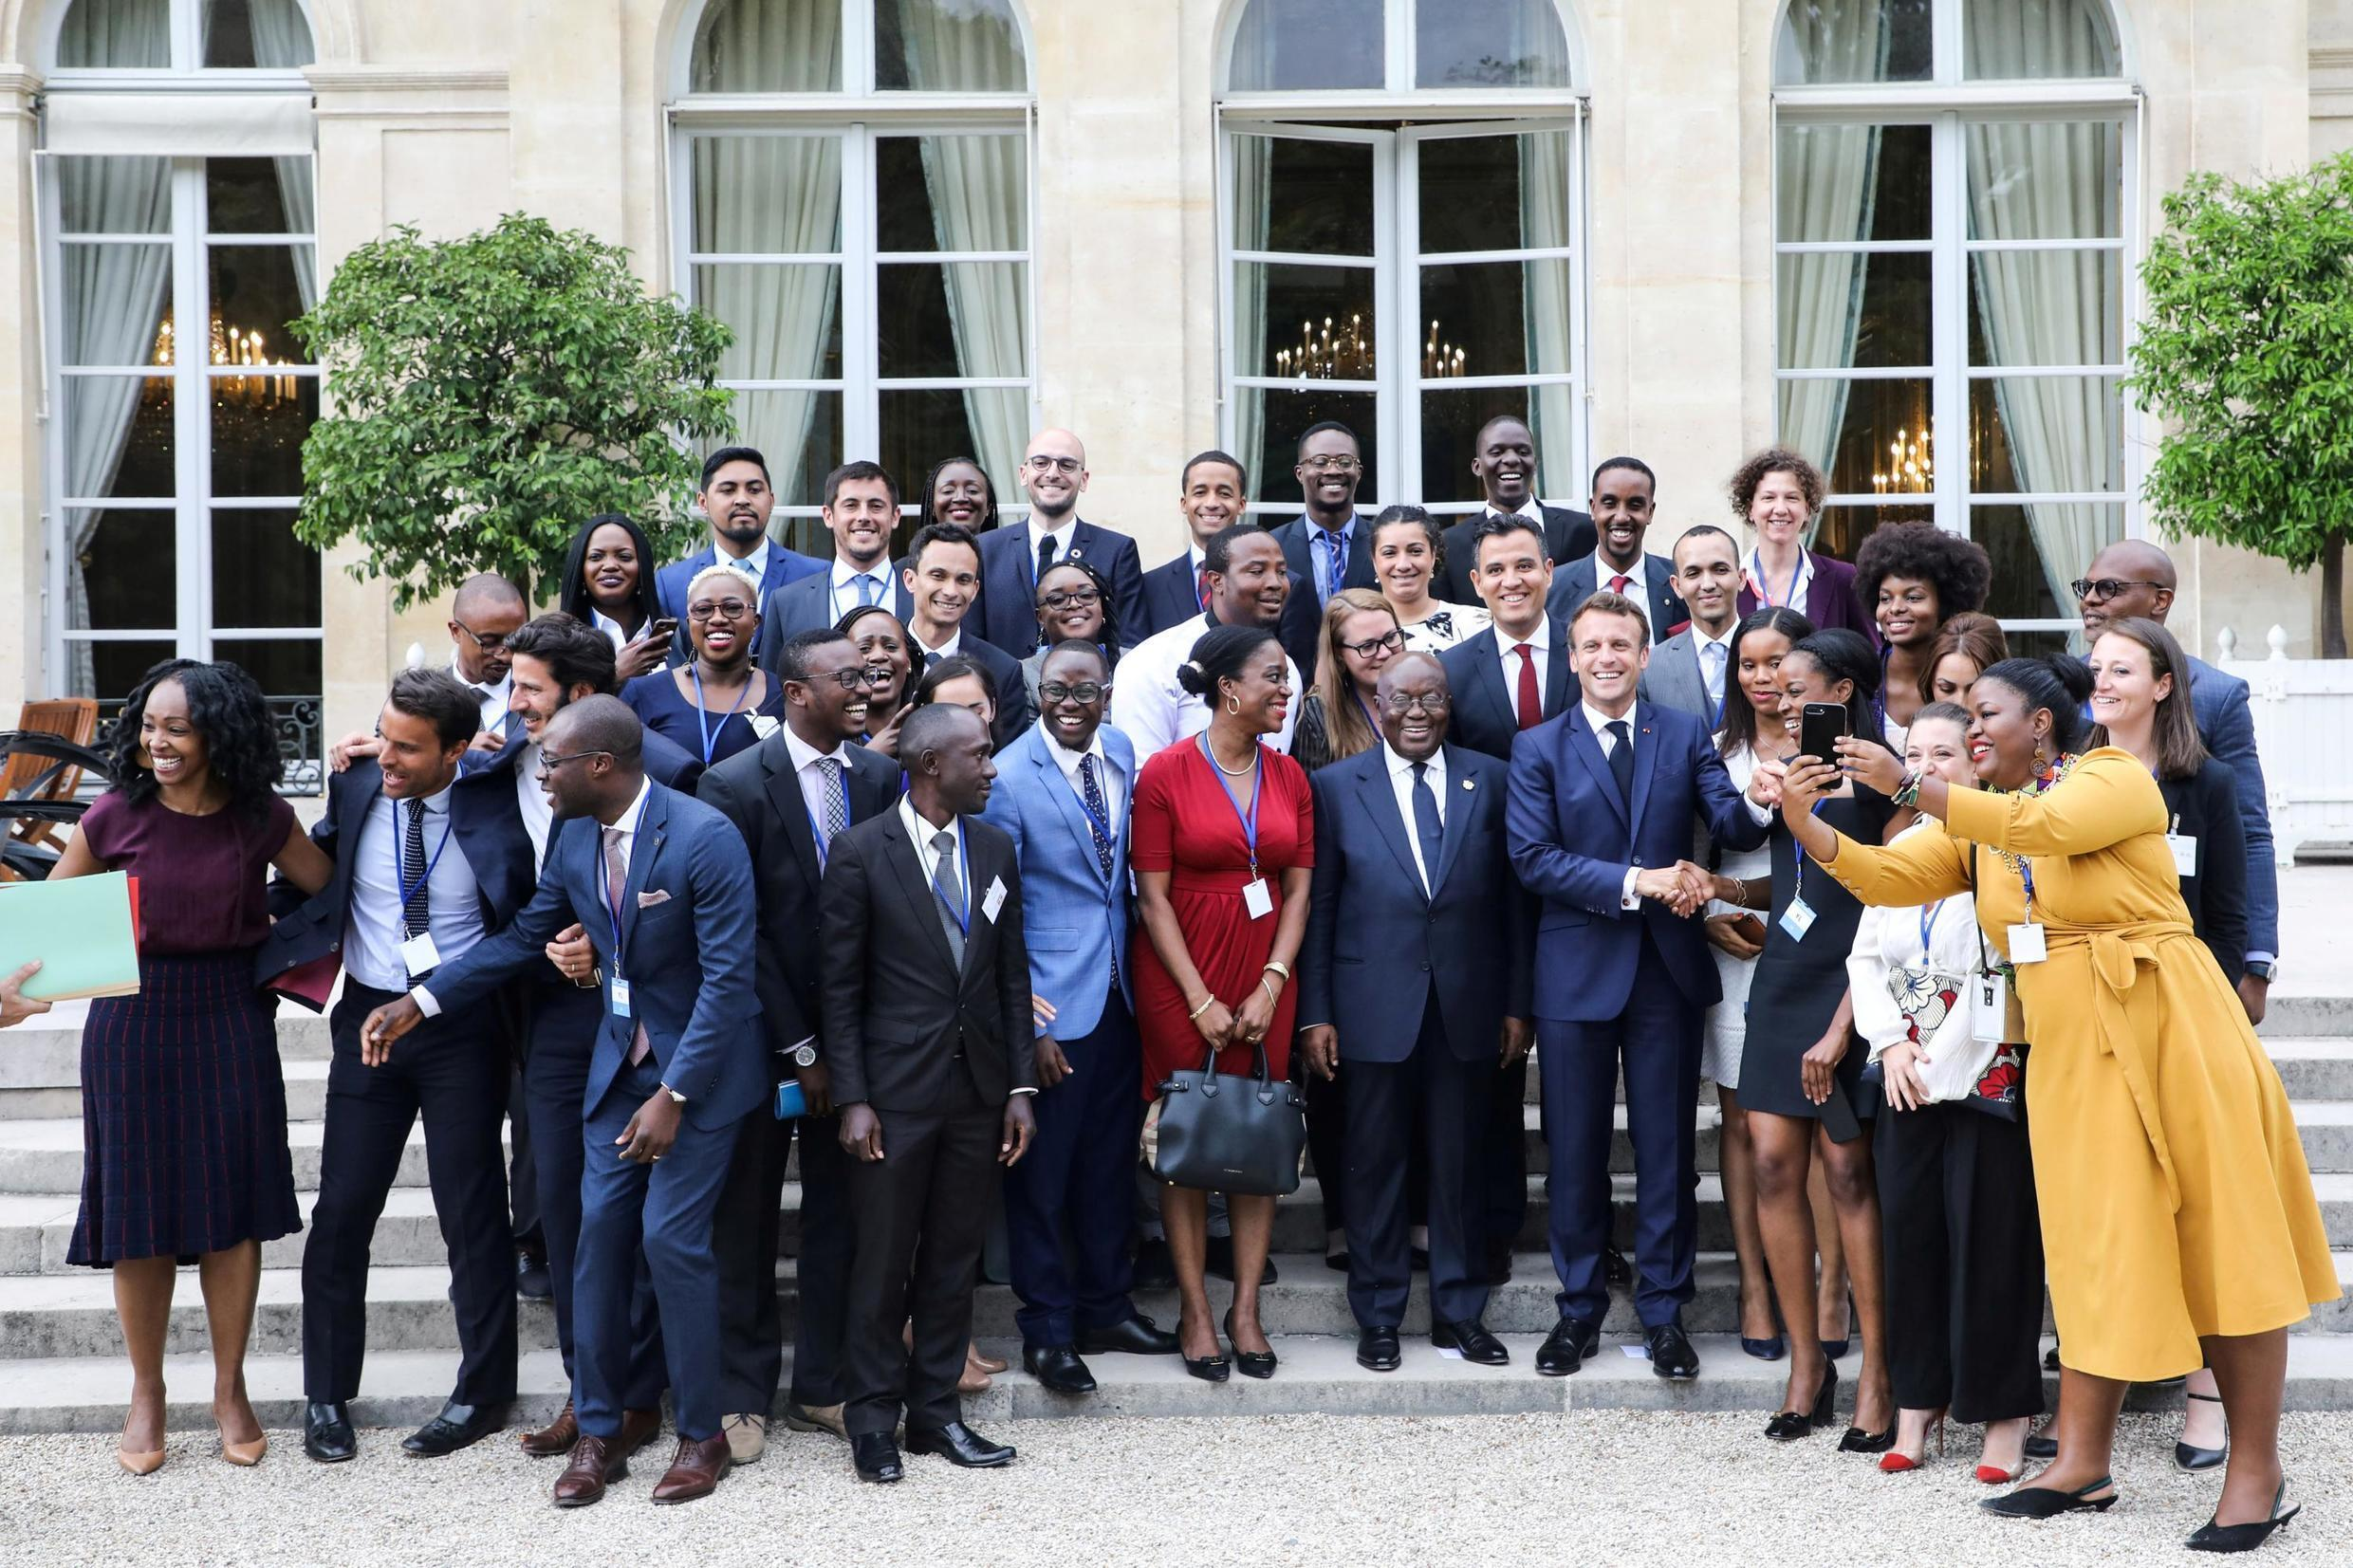 """French President Emmanuel Macron and Ghanaian President Nana Akufo-Addo pose with members of the African diaspora at the Elysee presidential palace after a debate entitled """"Parlons d'Afrique"""" (Let's talk about Africa) France July 11, 2019."""